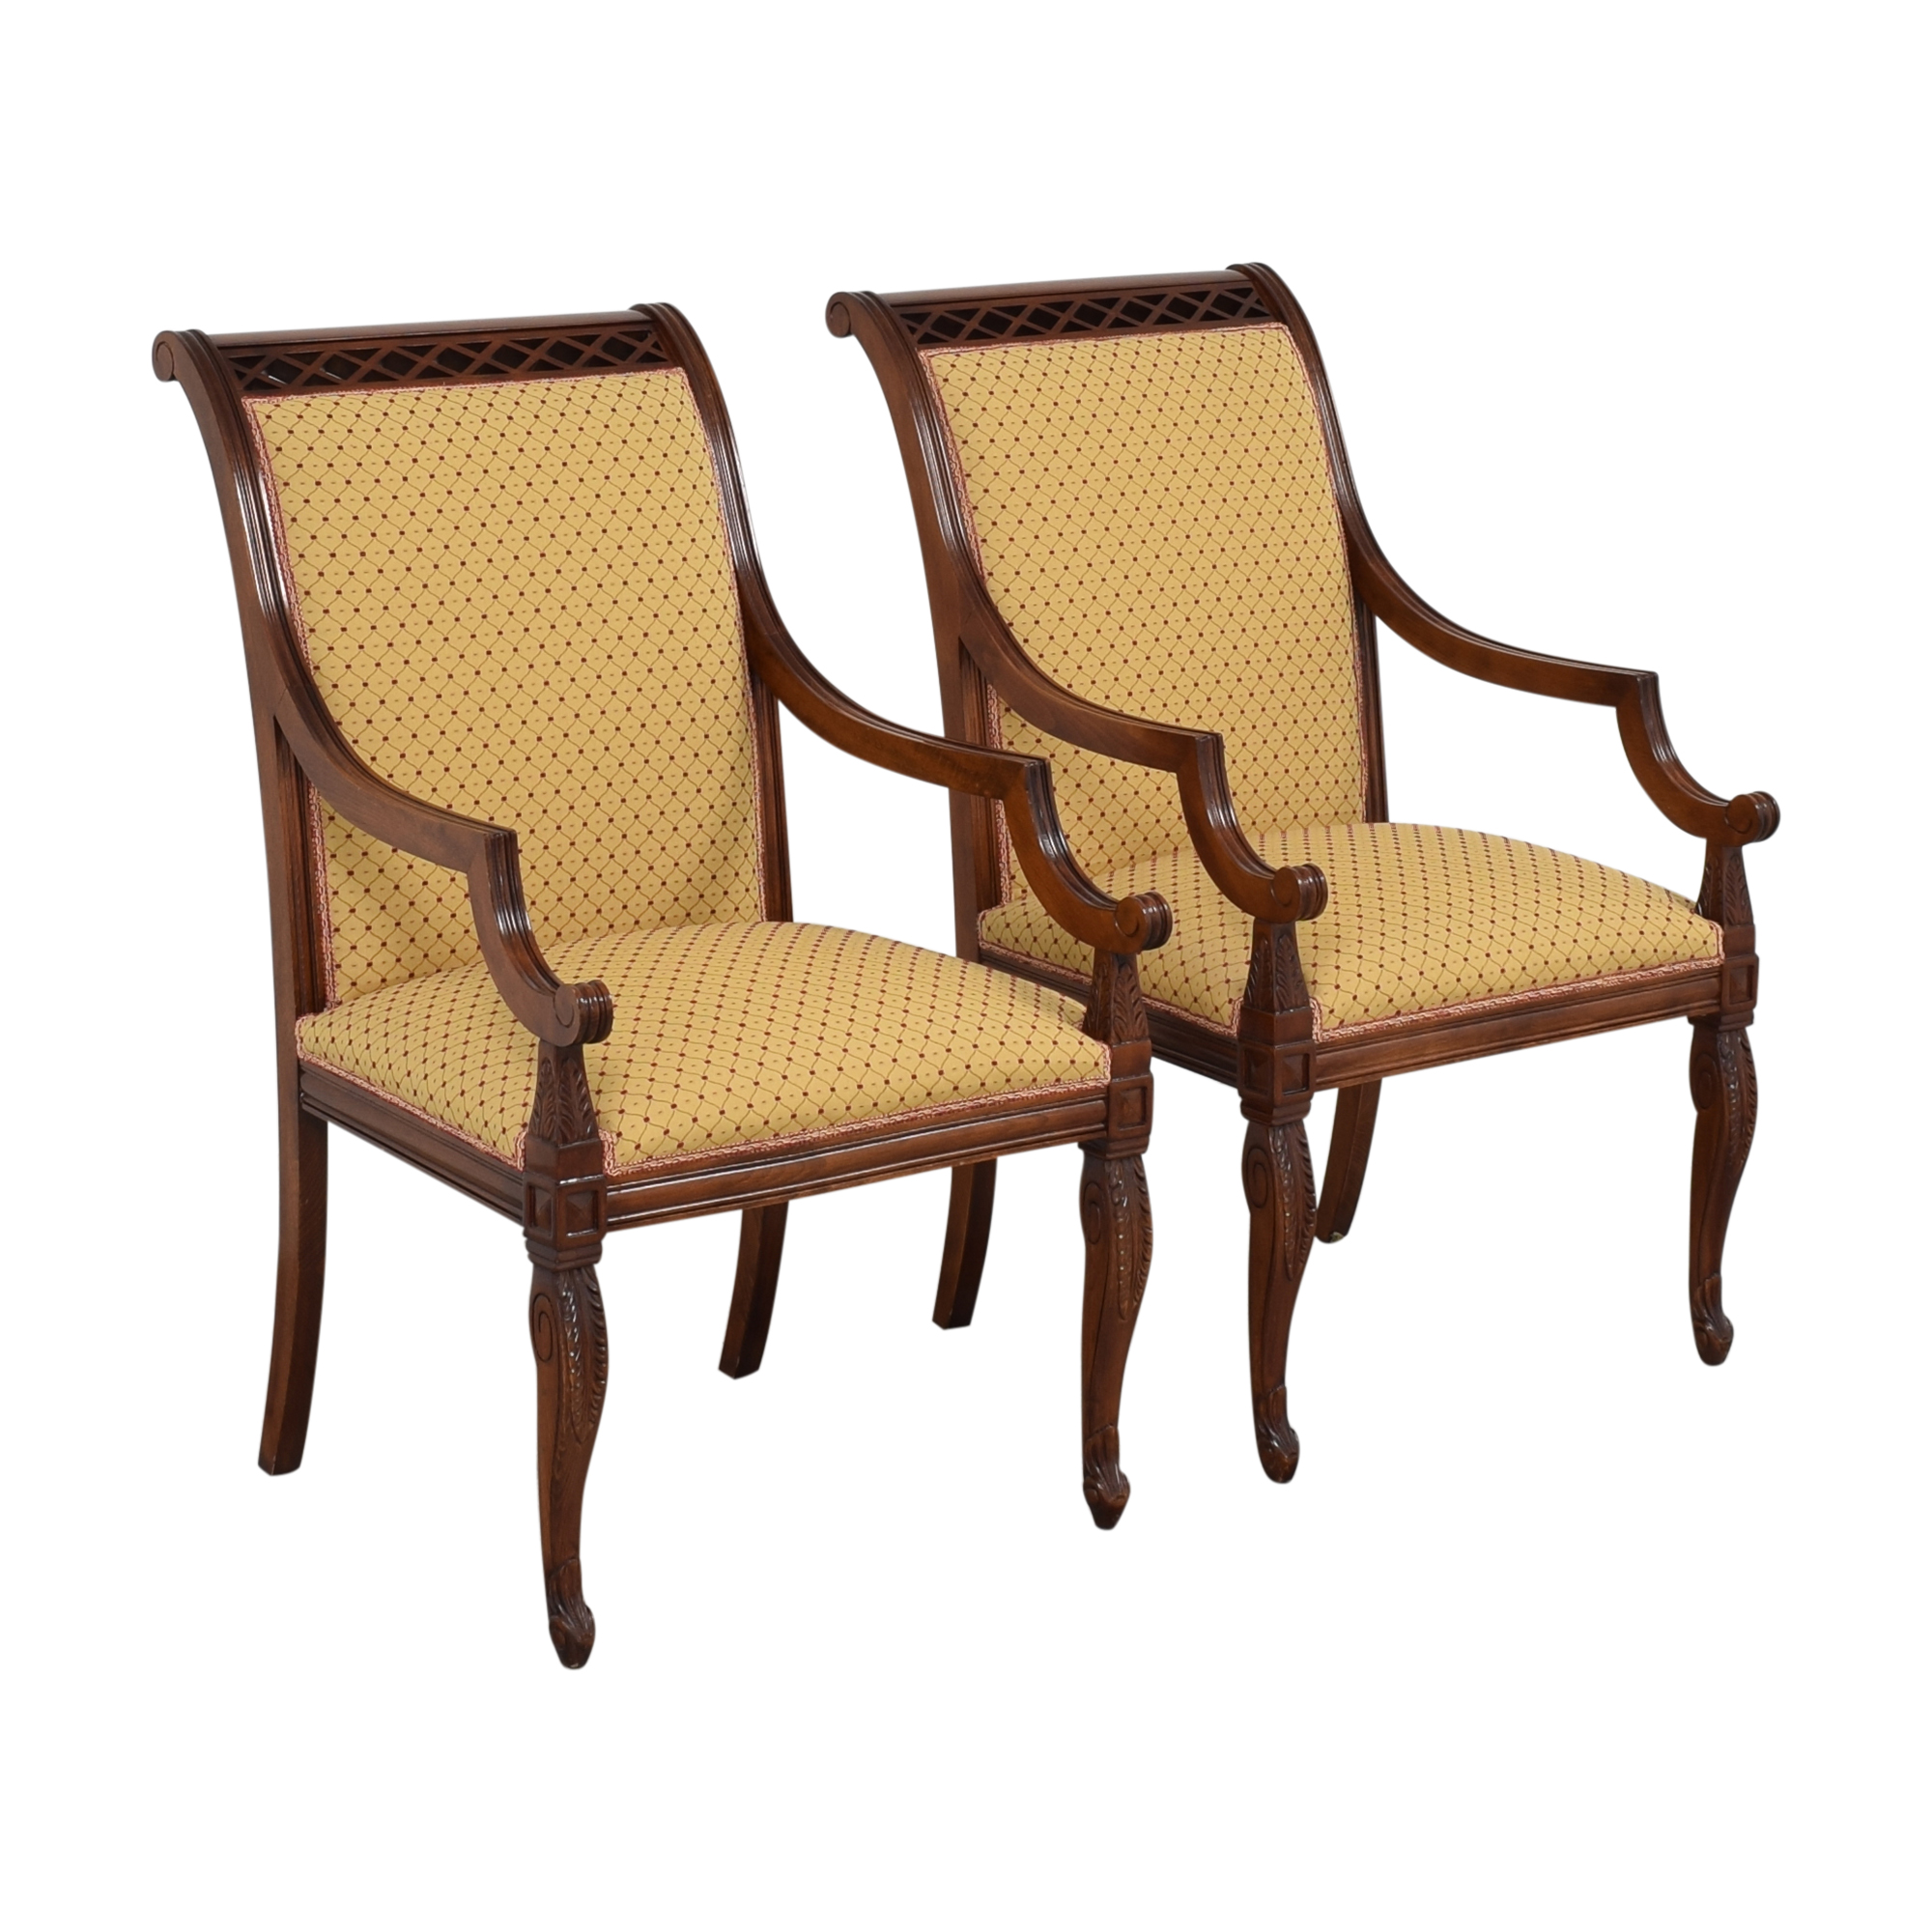 buy KPS Furnishings KPS Furnishings Custom Dining Arm Chairs online